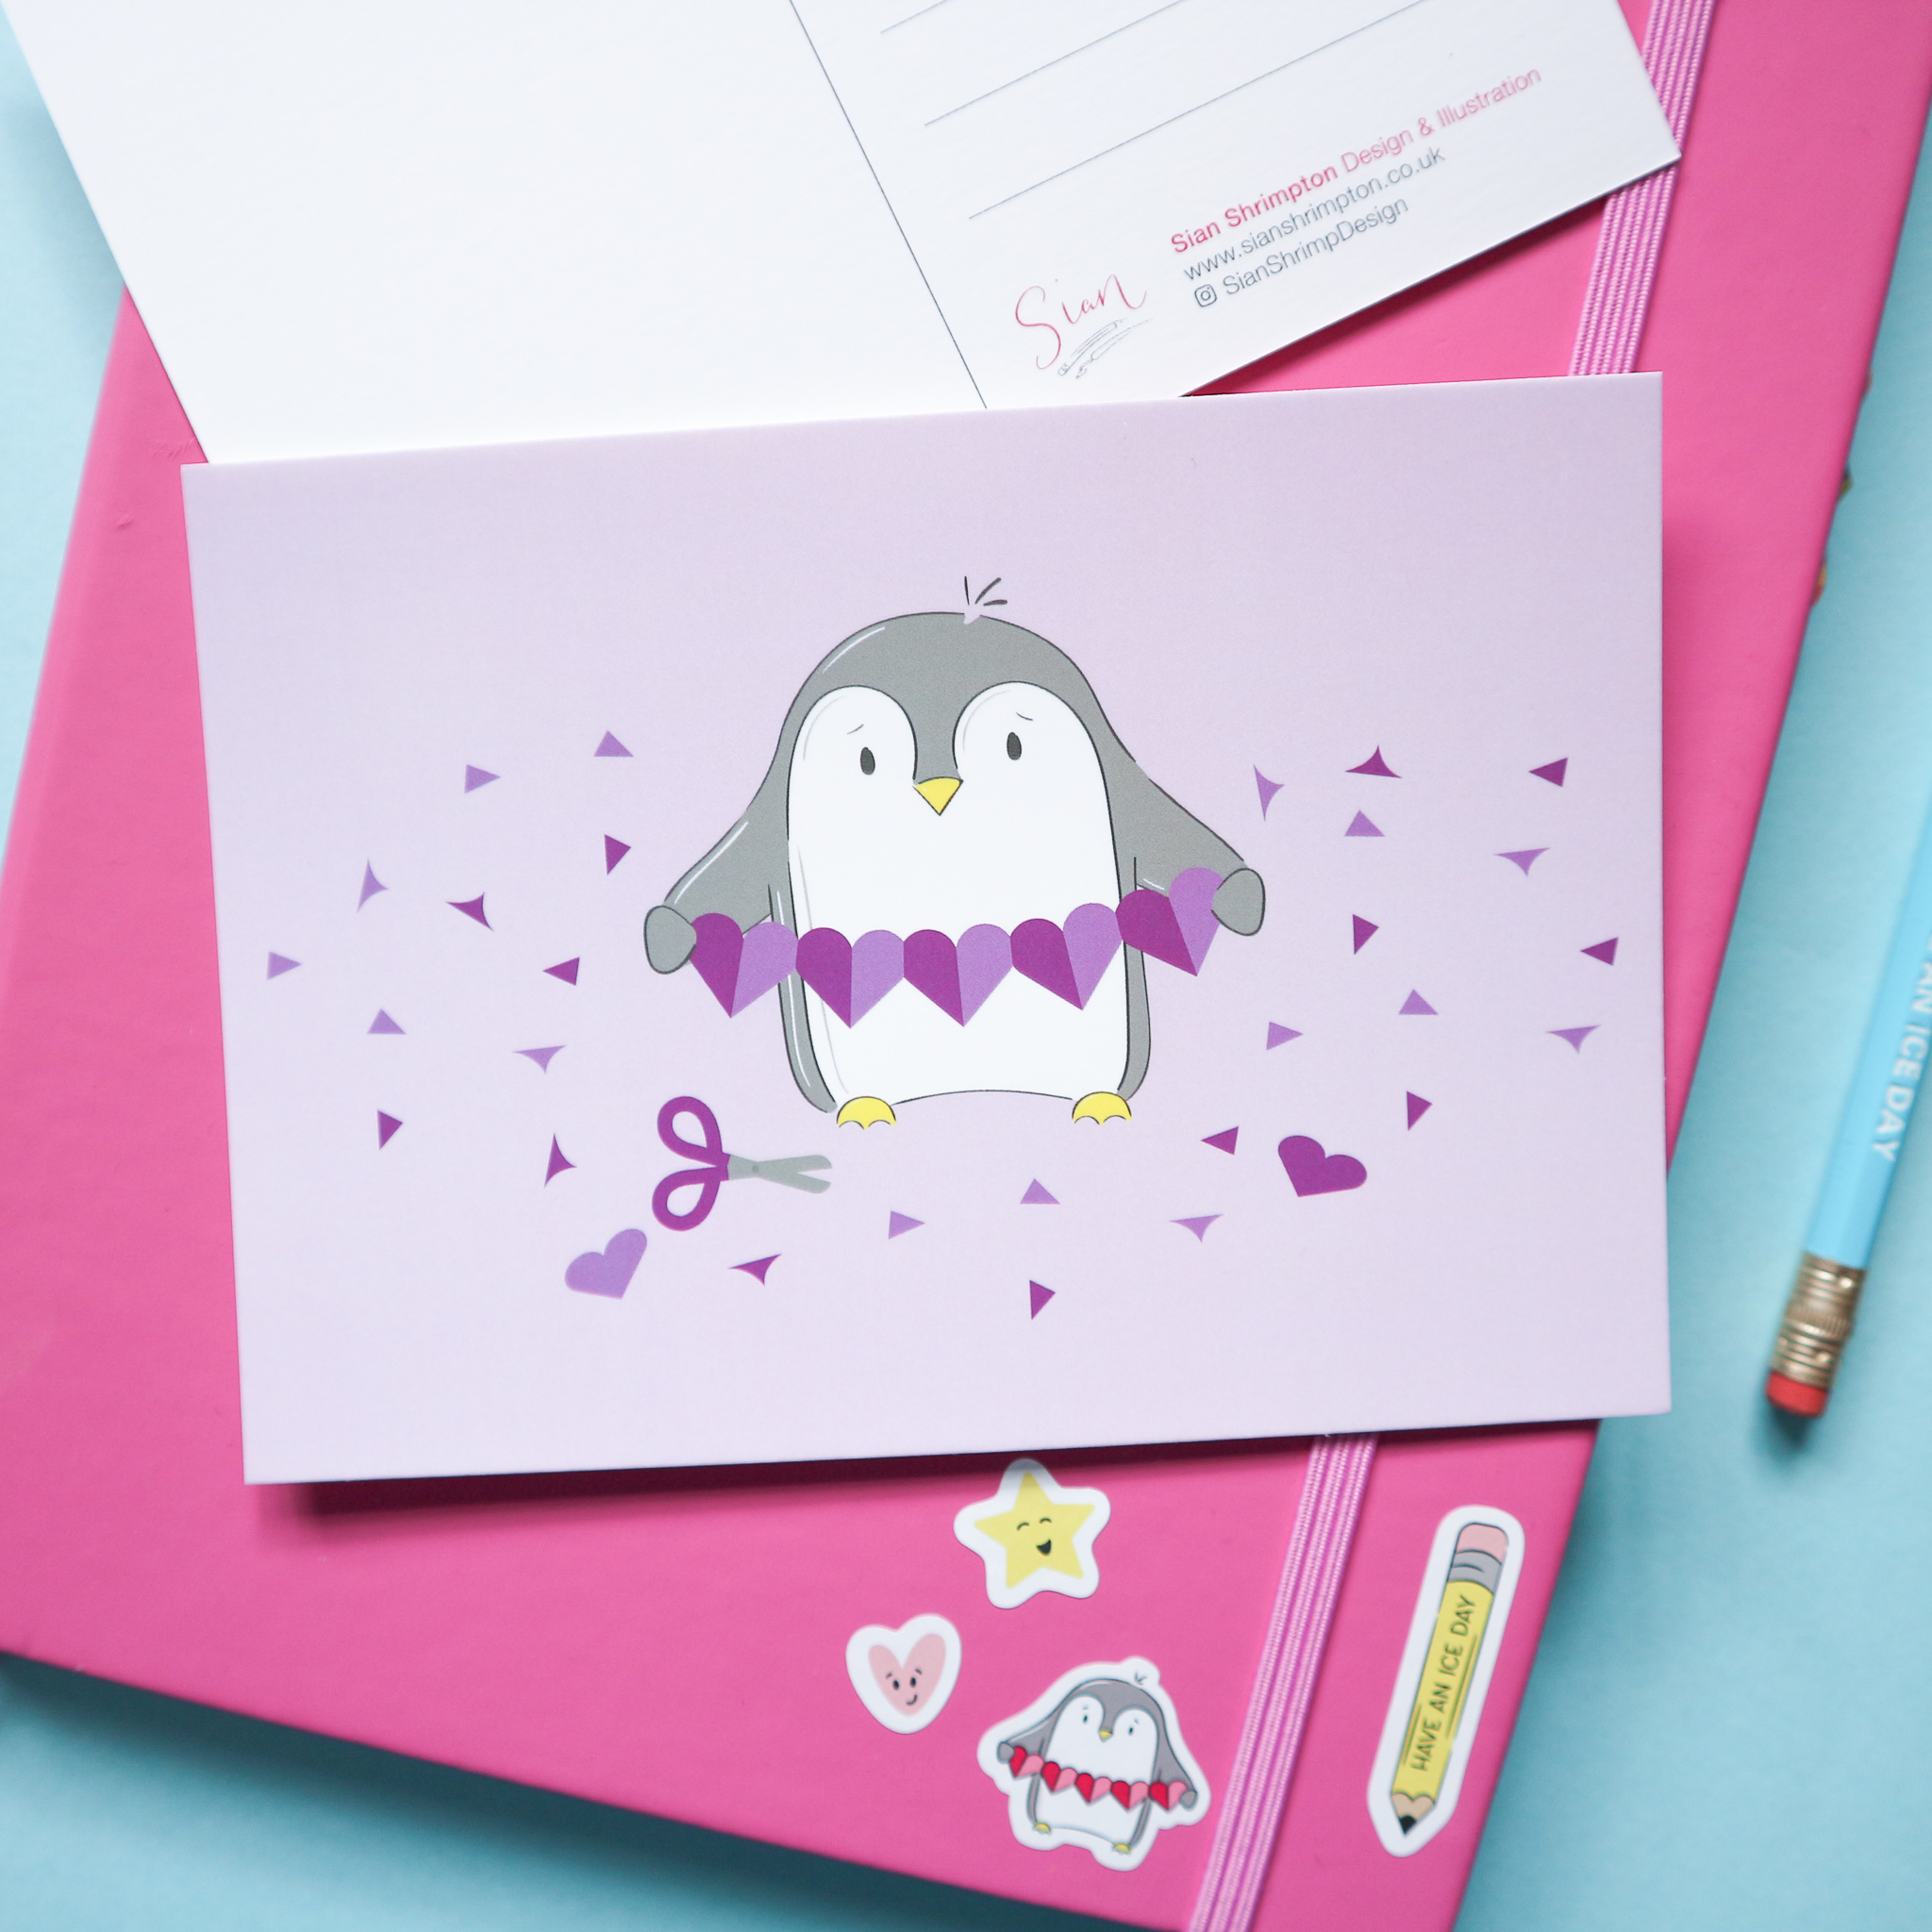 Penguin Purple Heart Garland Postcard by Sian Shrimpton